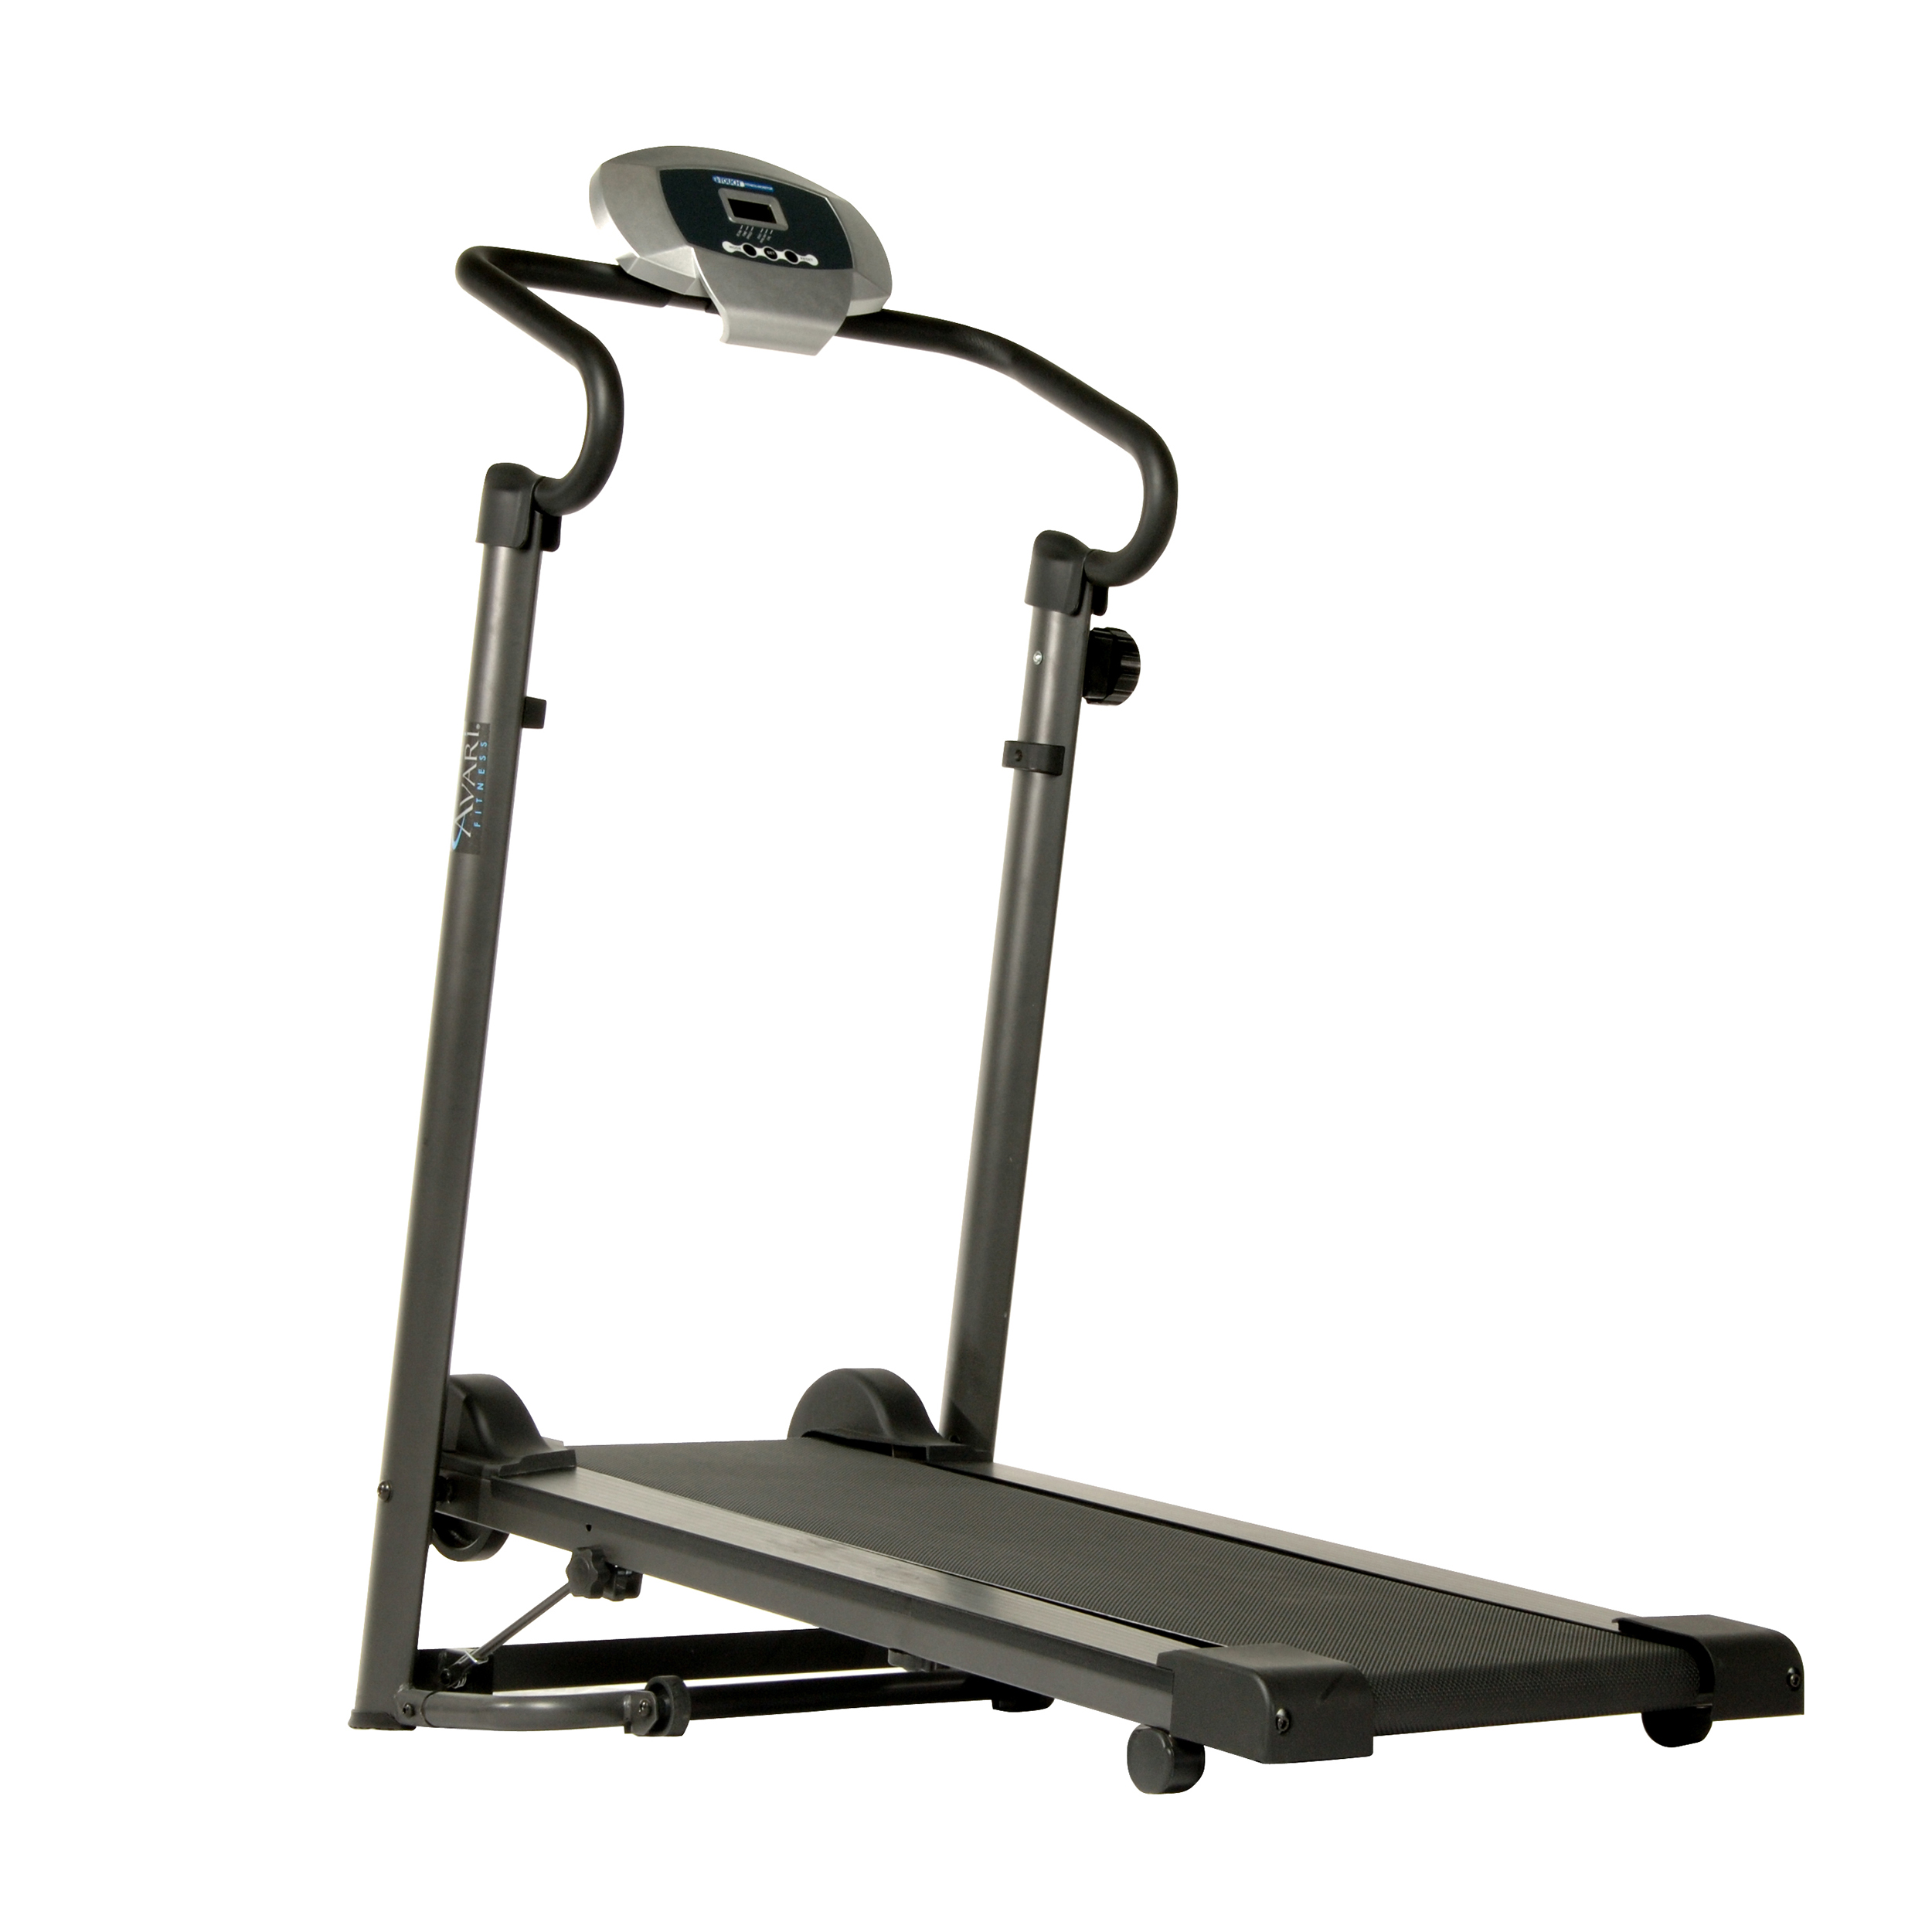 Avari Magnetic Treadmill home gym exercise equipment